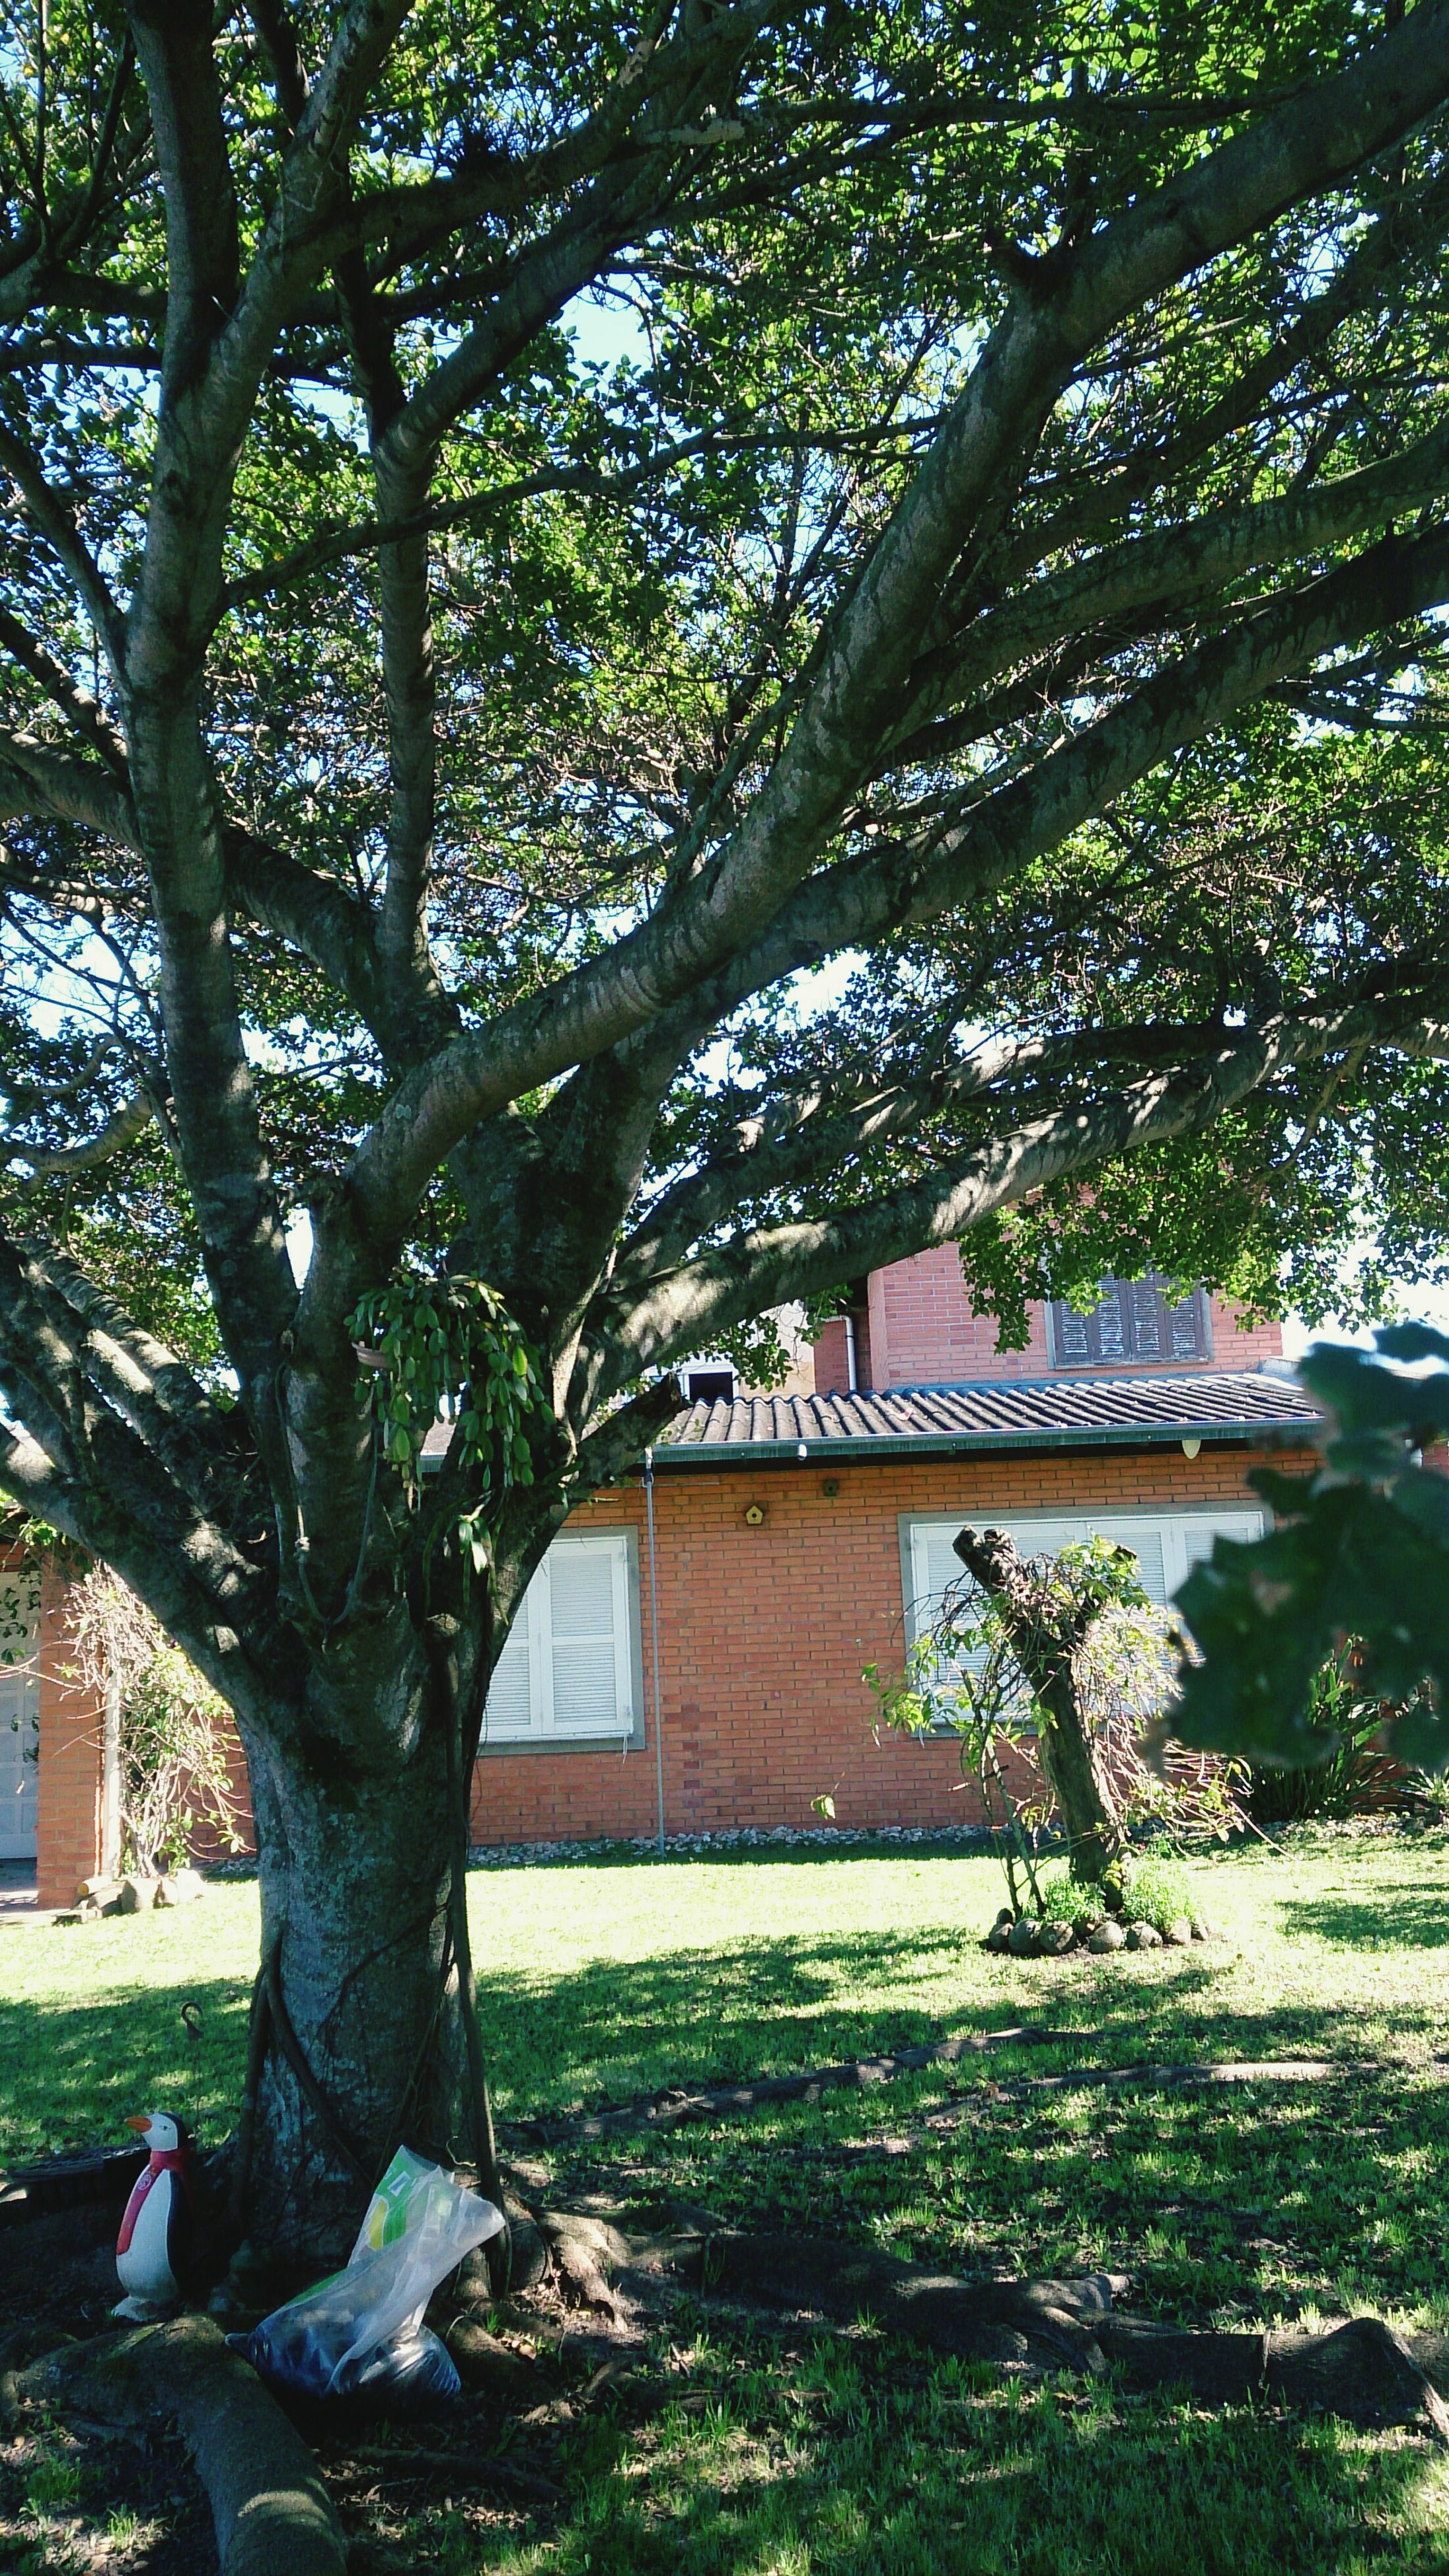 tree, built structure, growth, architecture, building exterior, tree trunk, green color, branch, leaf, park - man made space, nature, plant, day, outdoors, low angle view, sunlight, house, no people, tranquility, formal garden